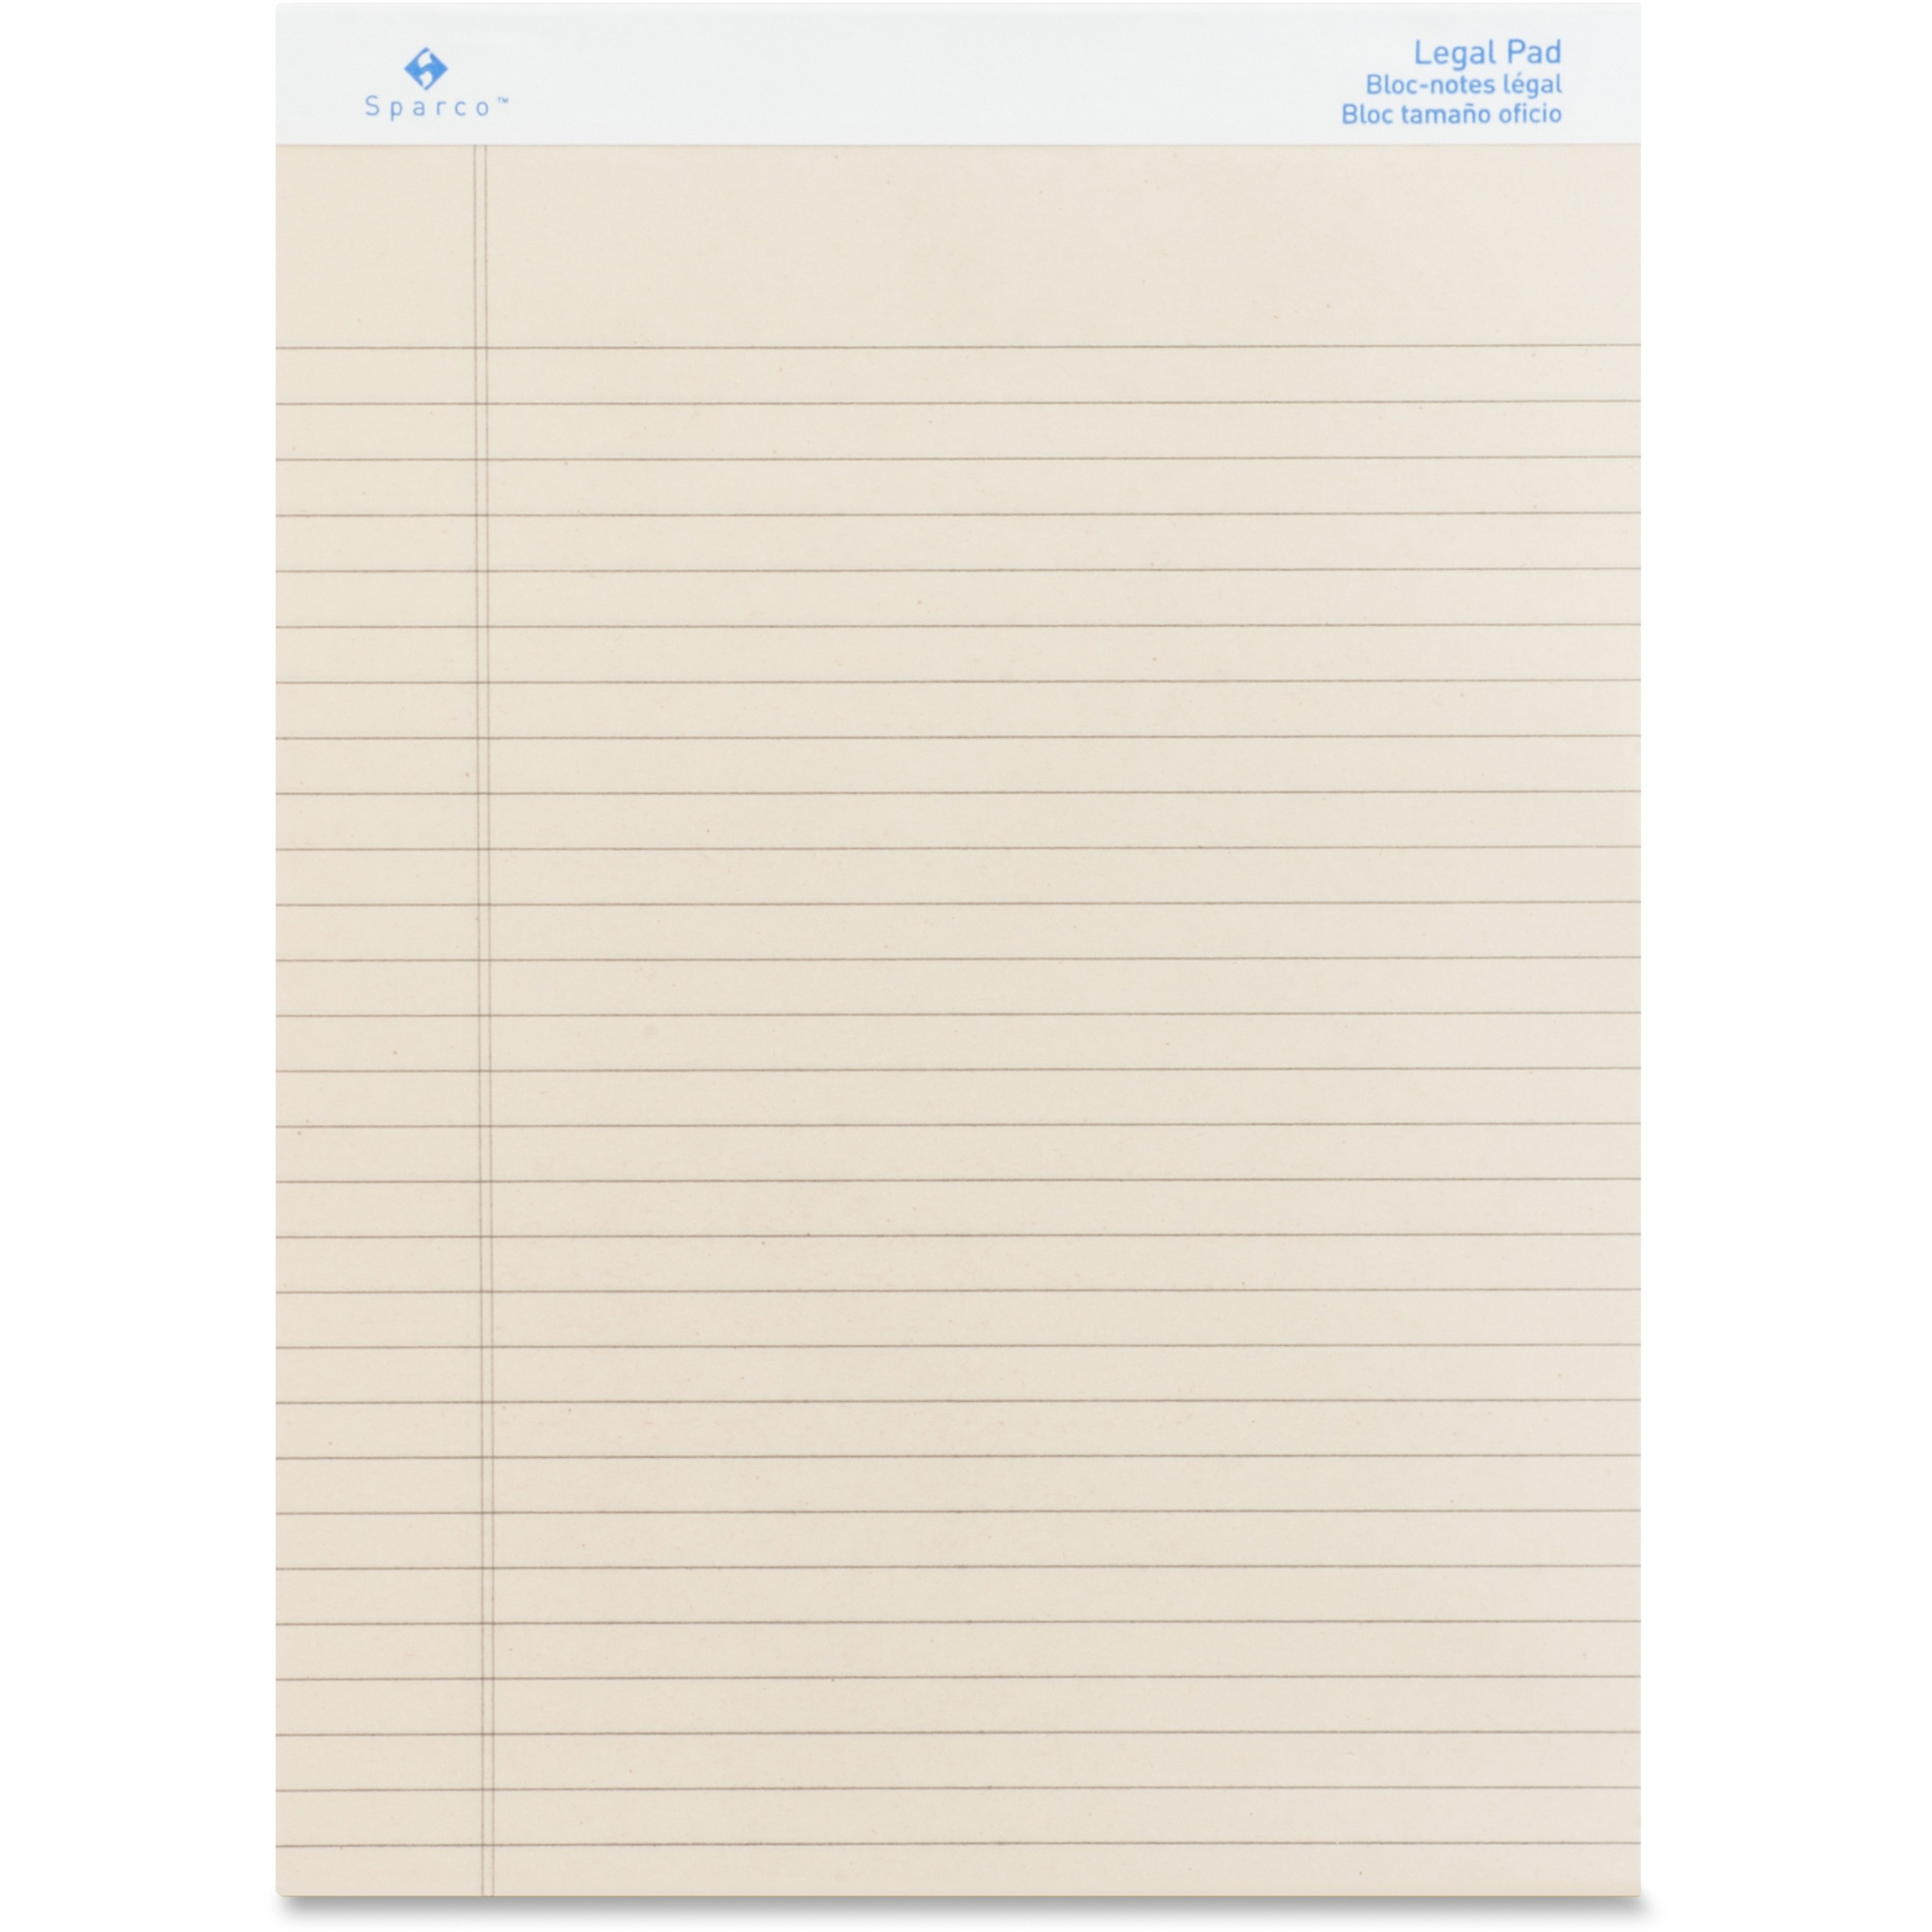 Sparco Rose Legal Ruled Pads